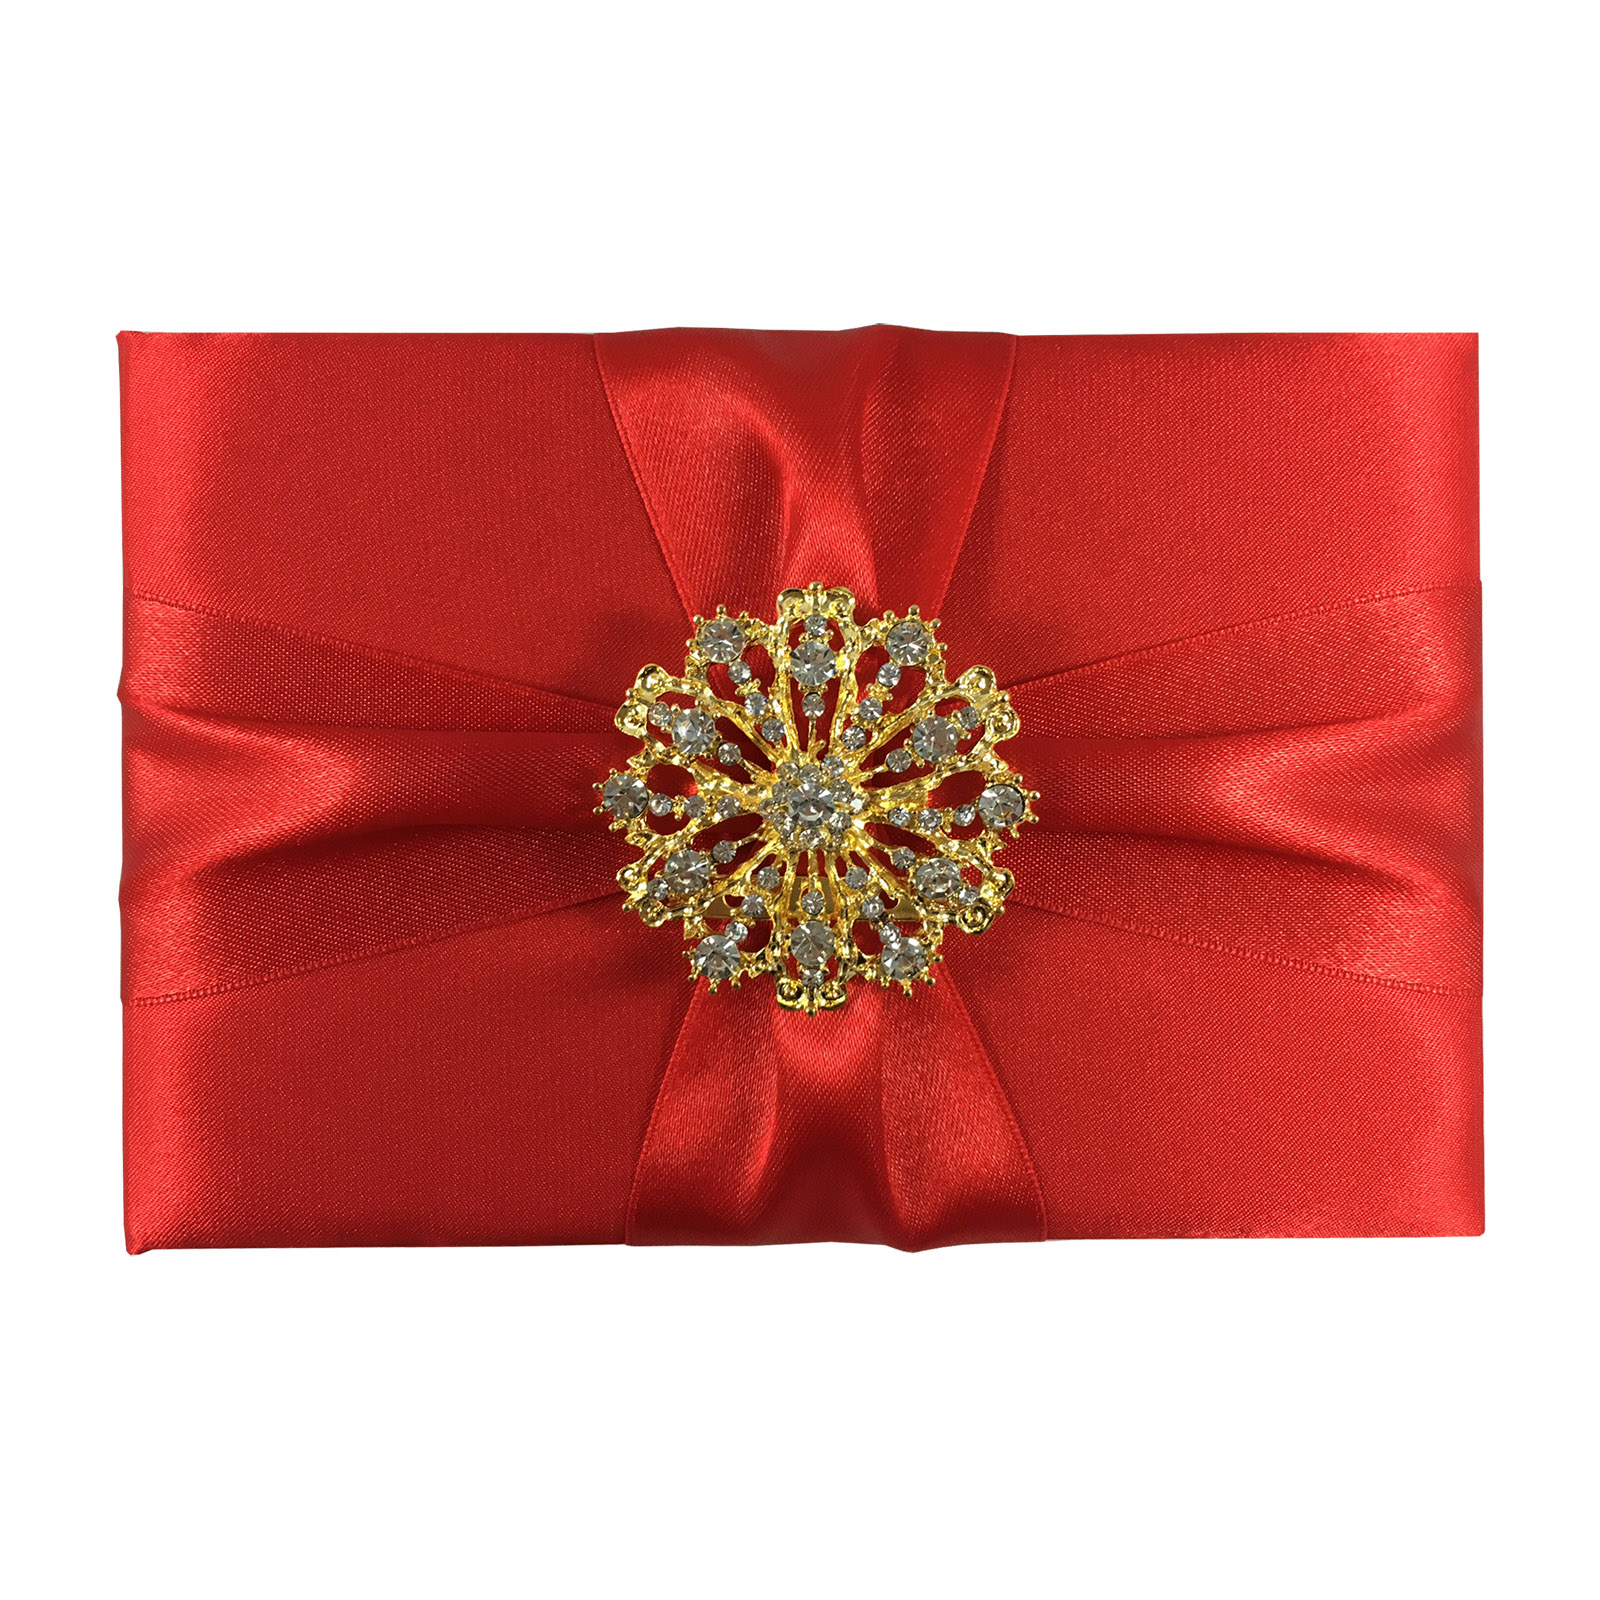 Red Silk Folder With Golden Rhinestone Brooch Embellishment - Luxury ...